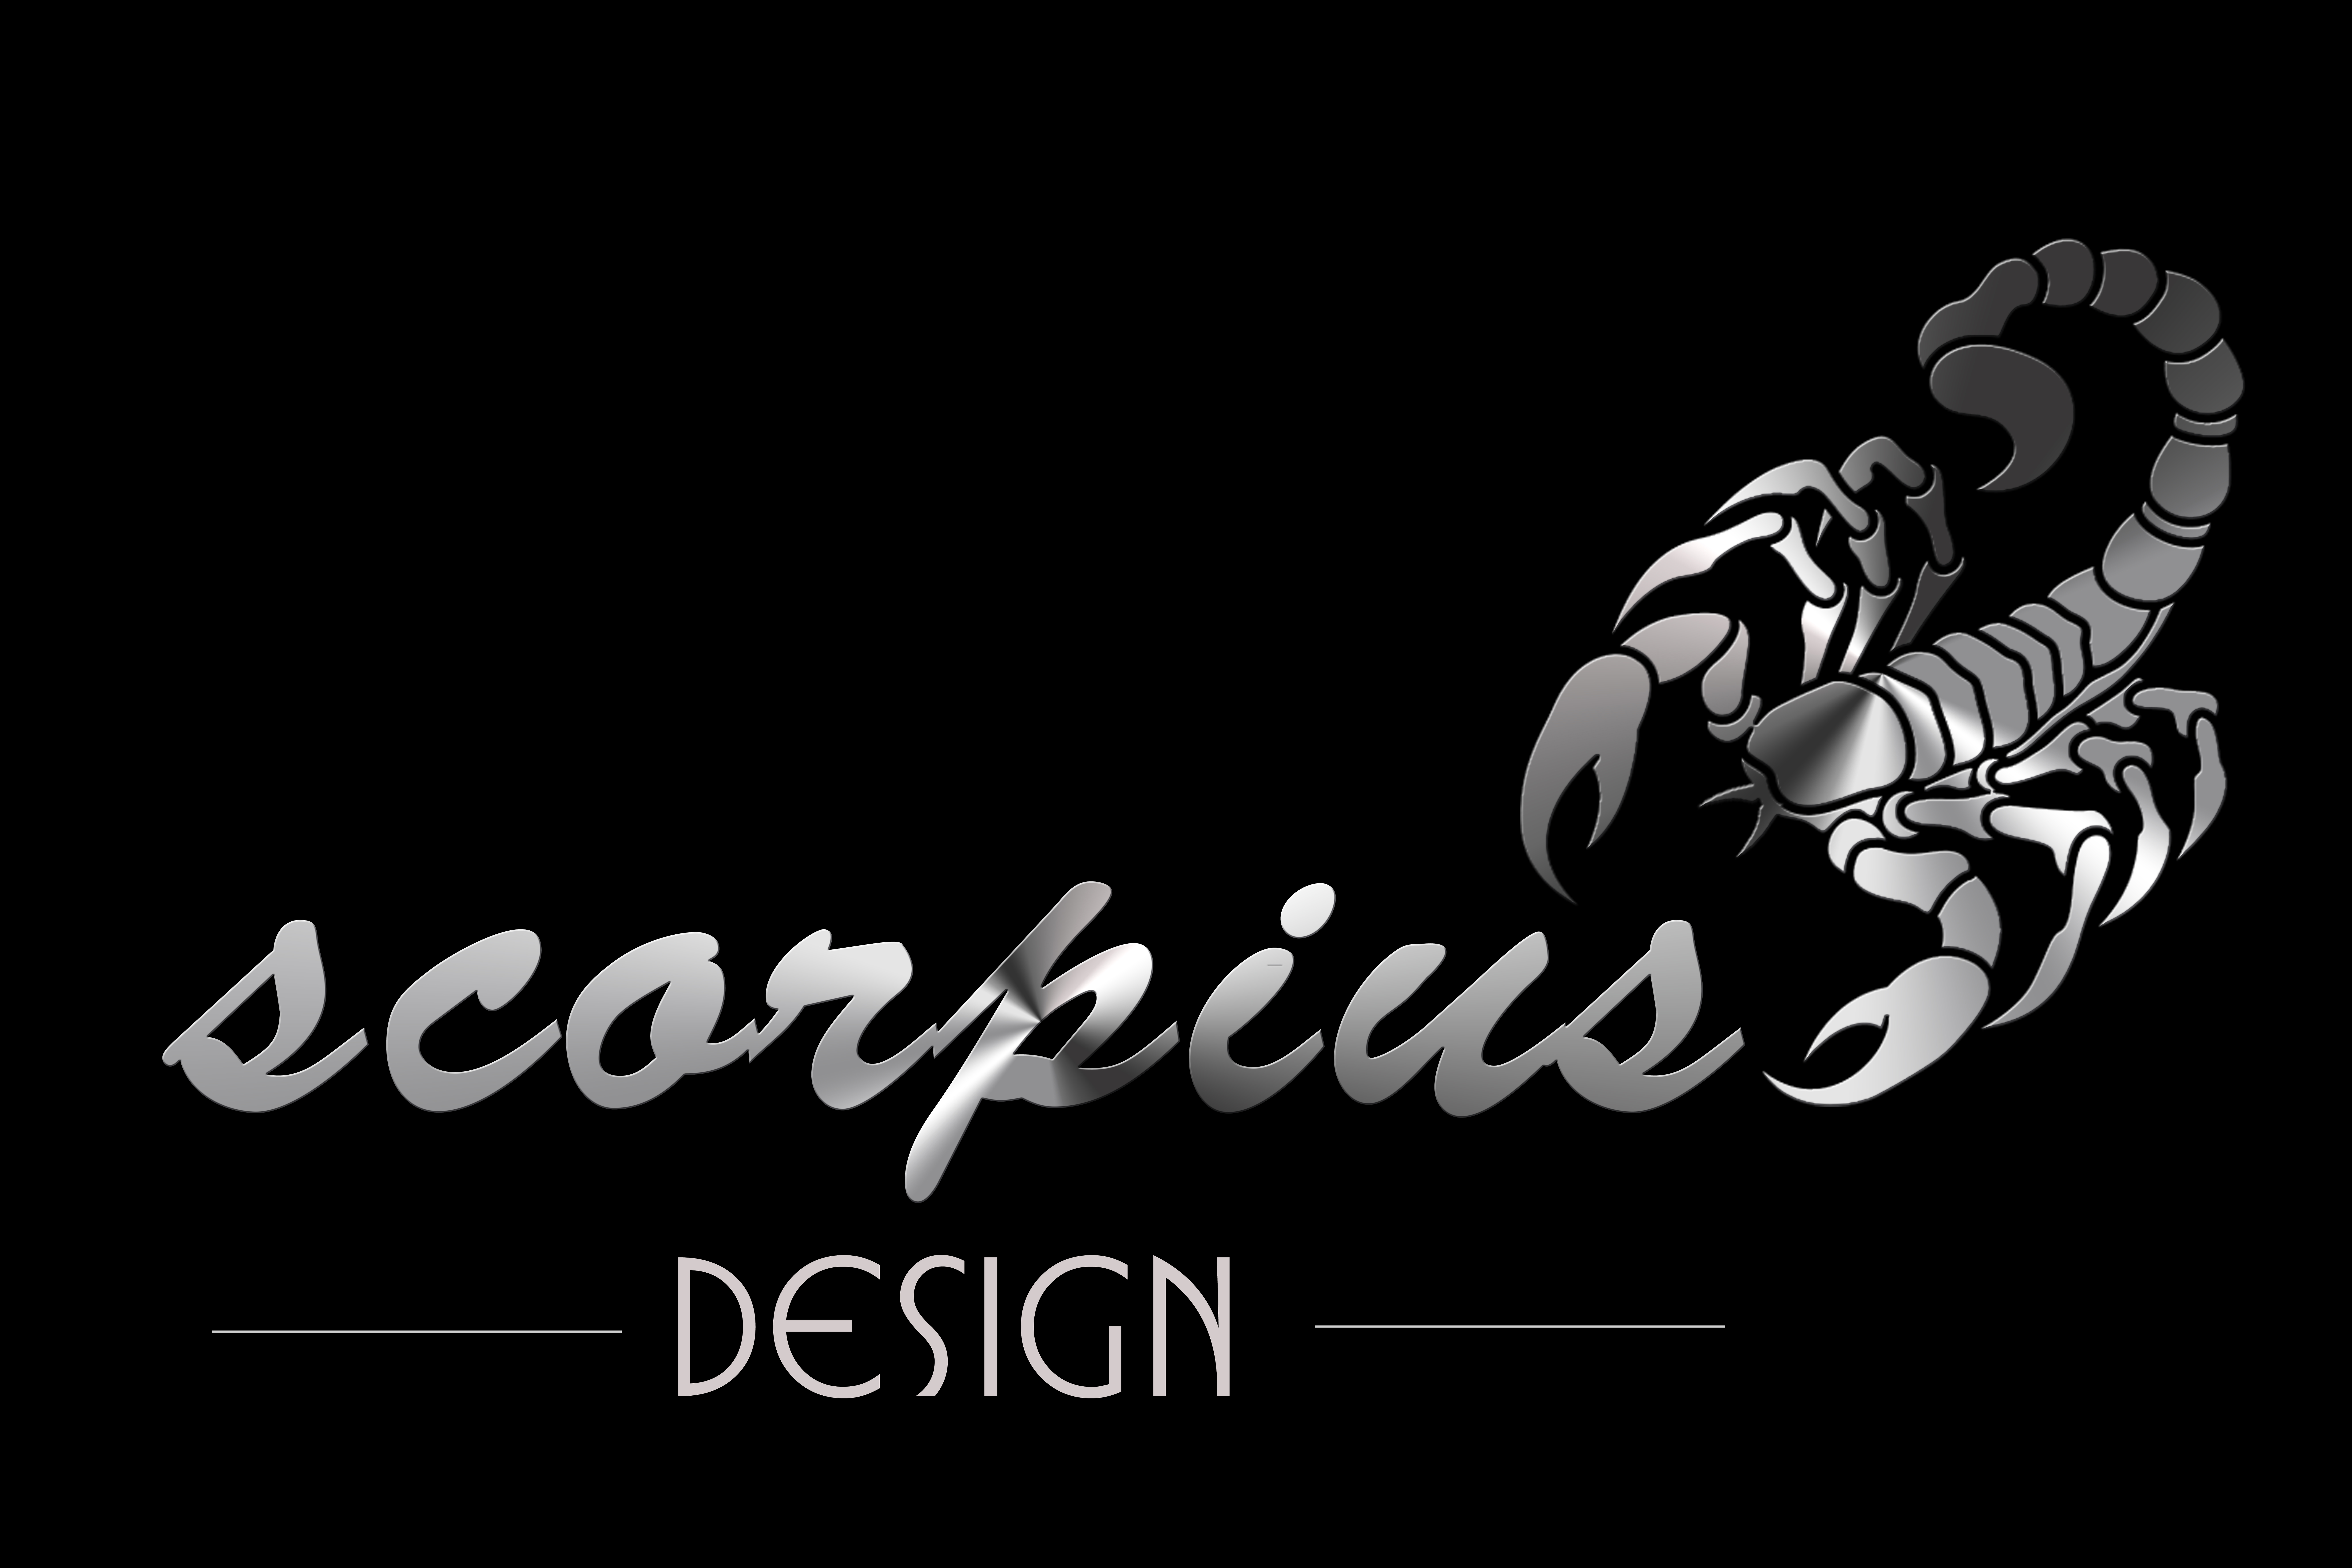 Business Card designer | Scorpius design